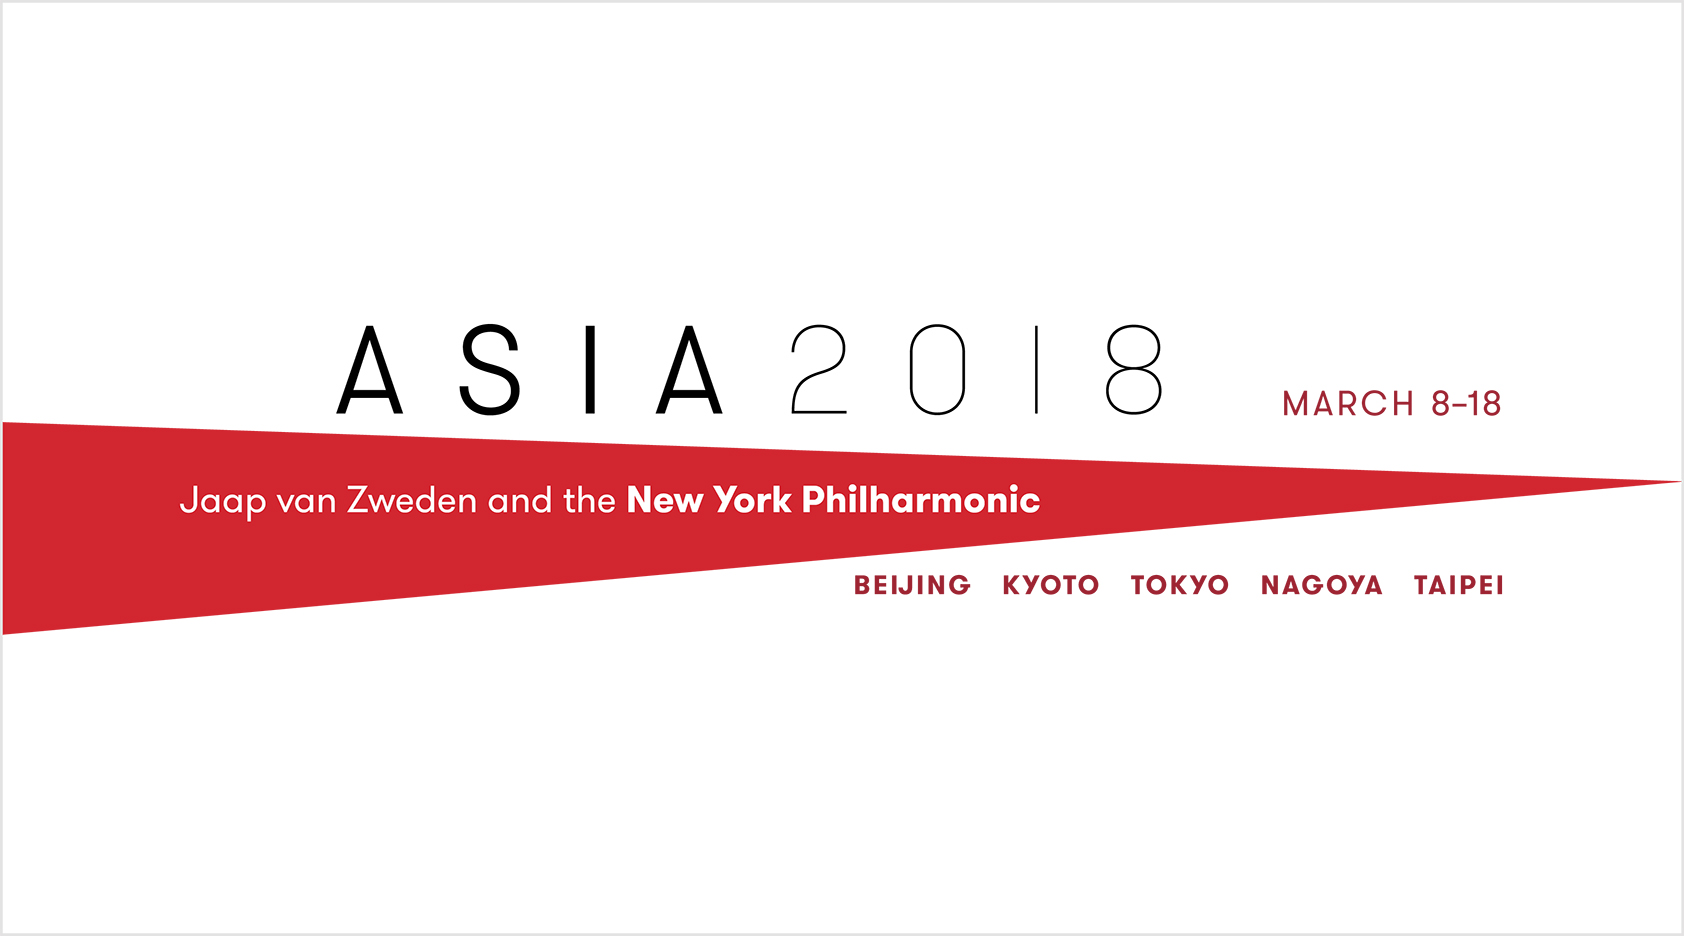 9b849726654461 Jaap van Zweden and the New York Philharmonic To Tour Asia in March 2018